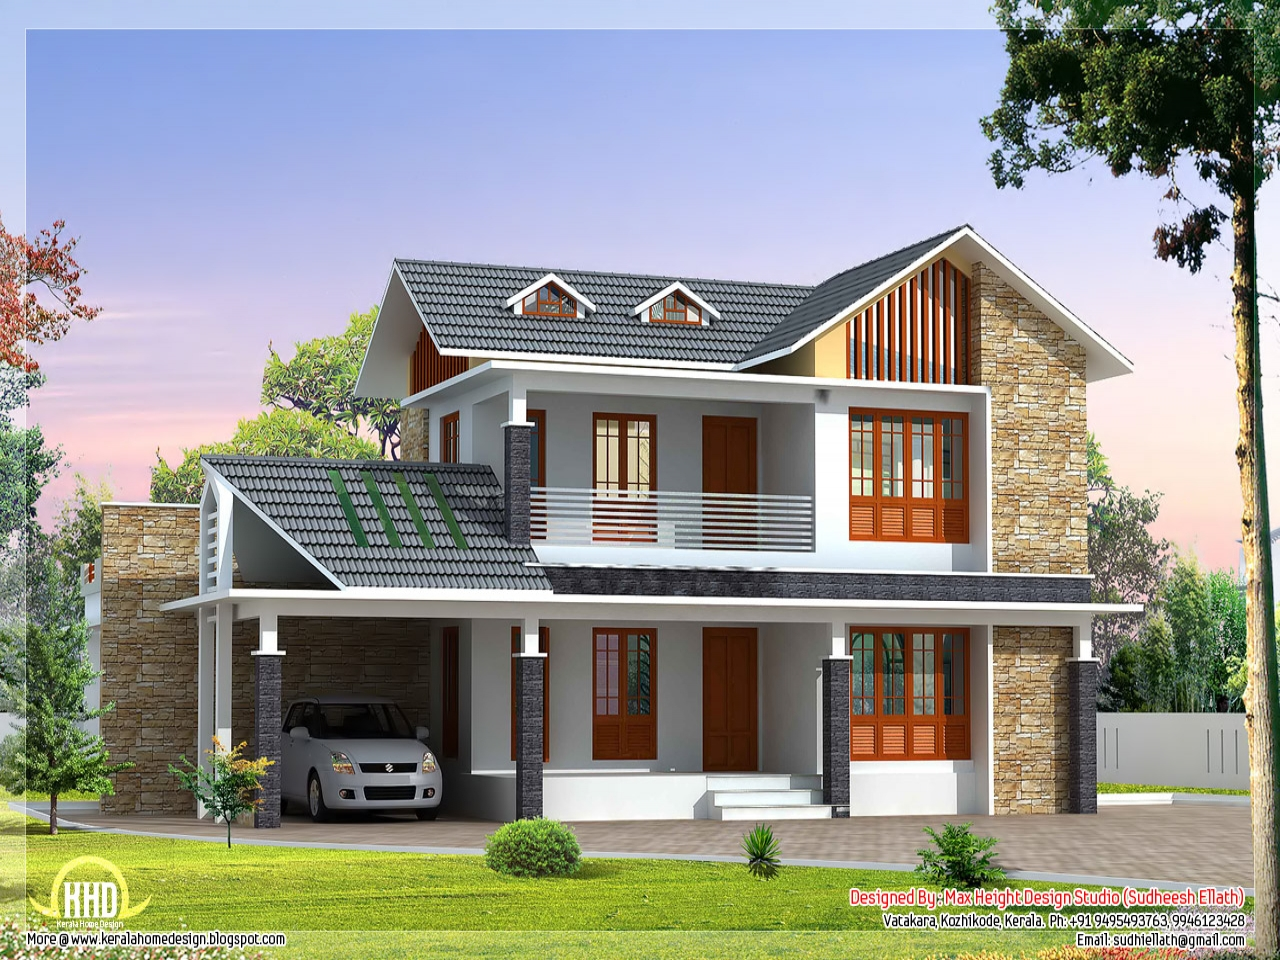 Beautiful villa house designs simple house designs small for 4 bedroom tiny house